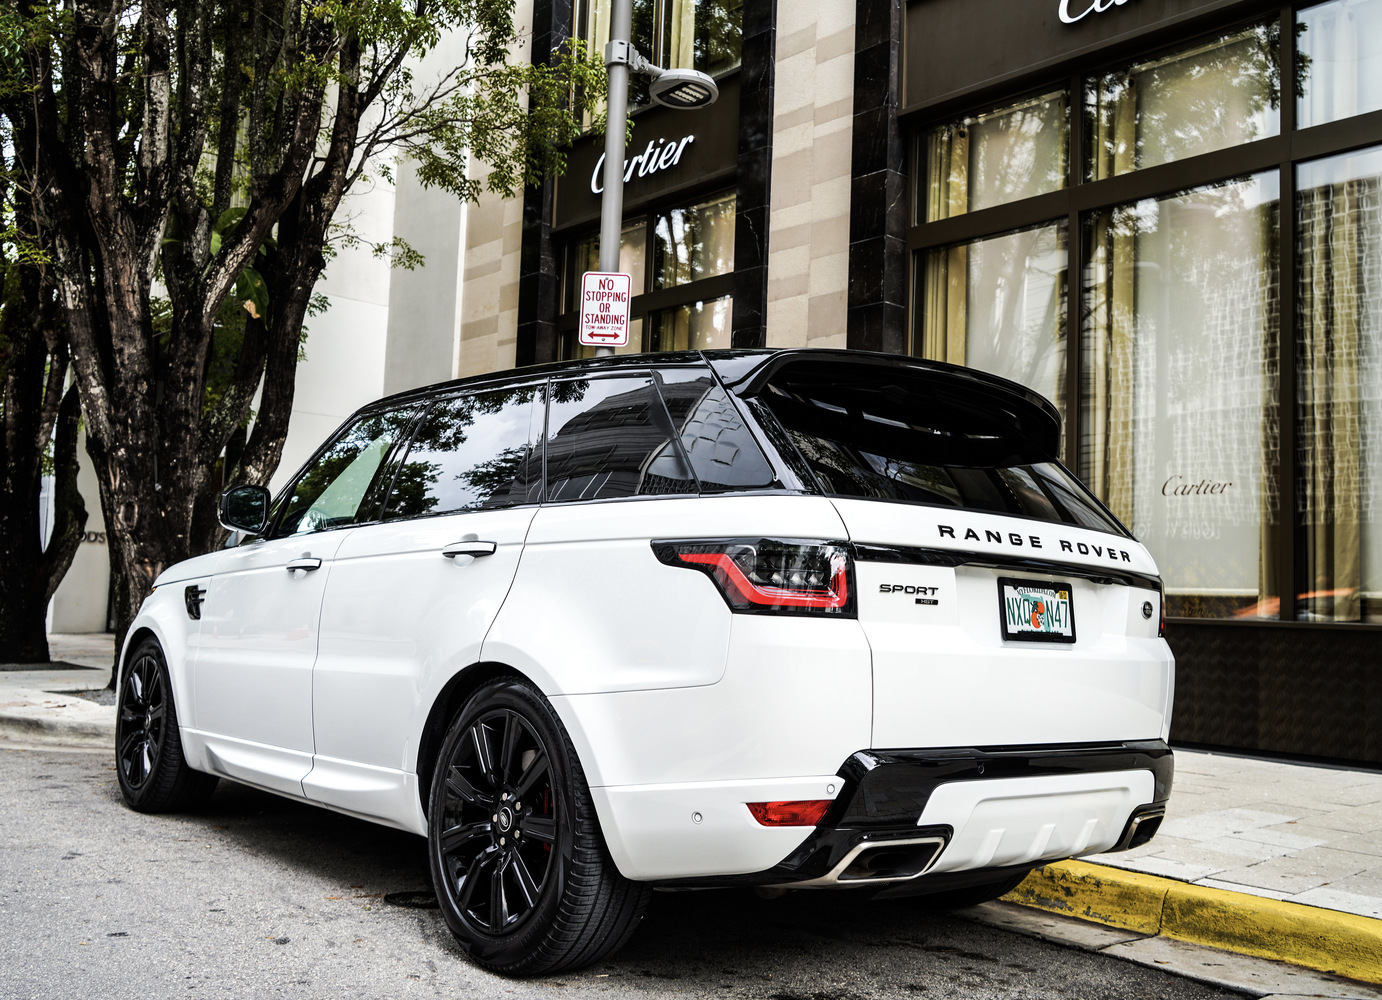 Image #2 of our  Range Rover Sport 22 White    In Miami Fort Lauderdale Palm Beach South Florida